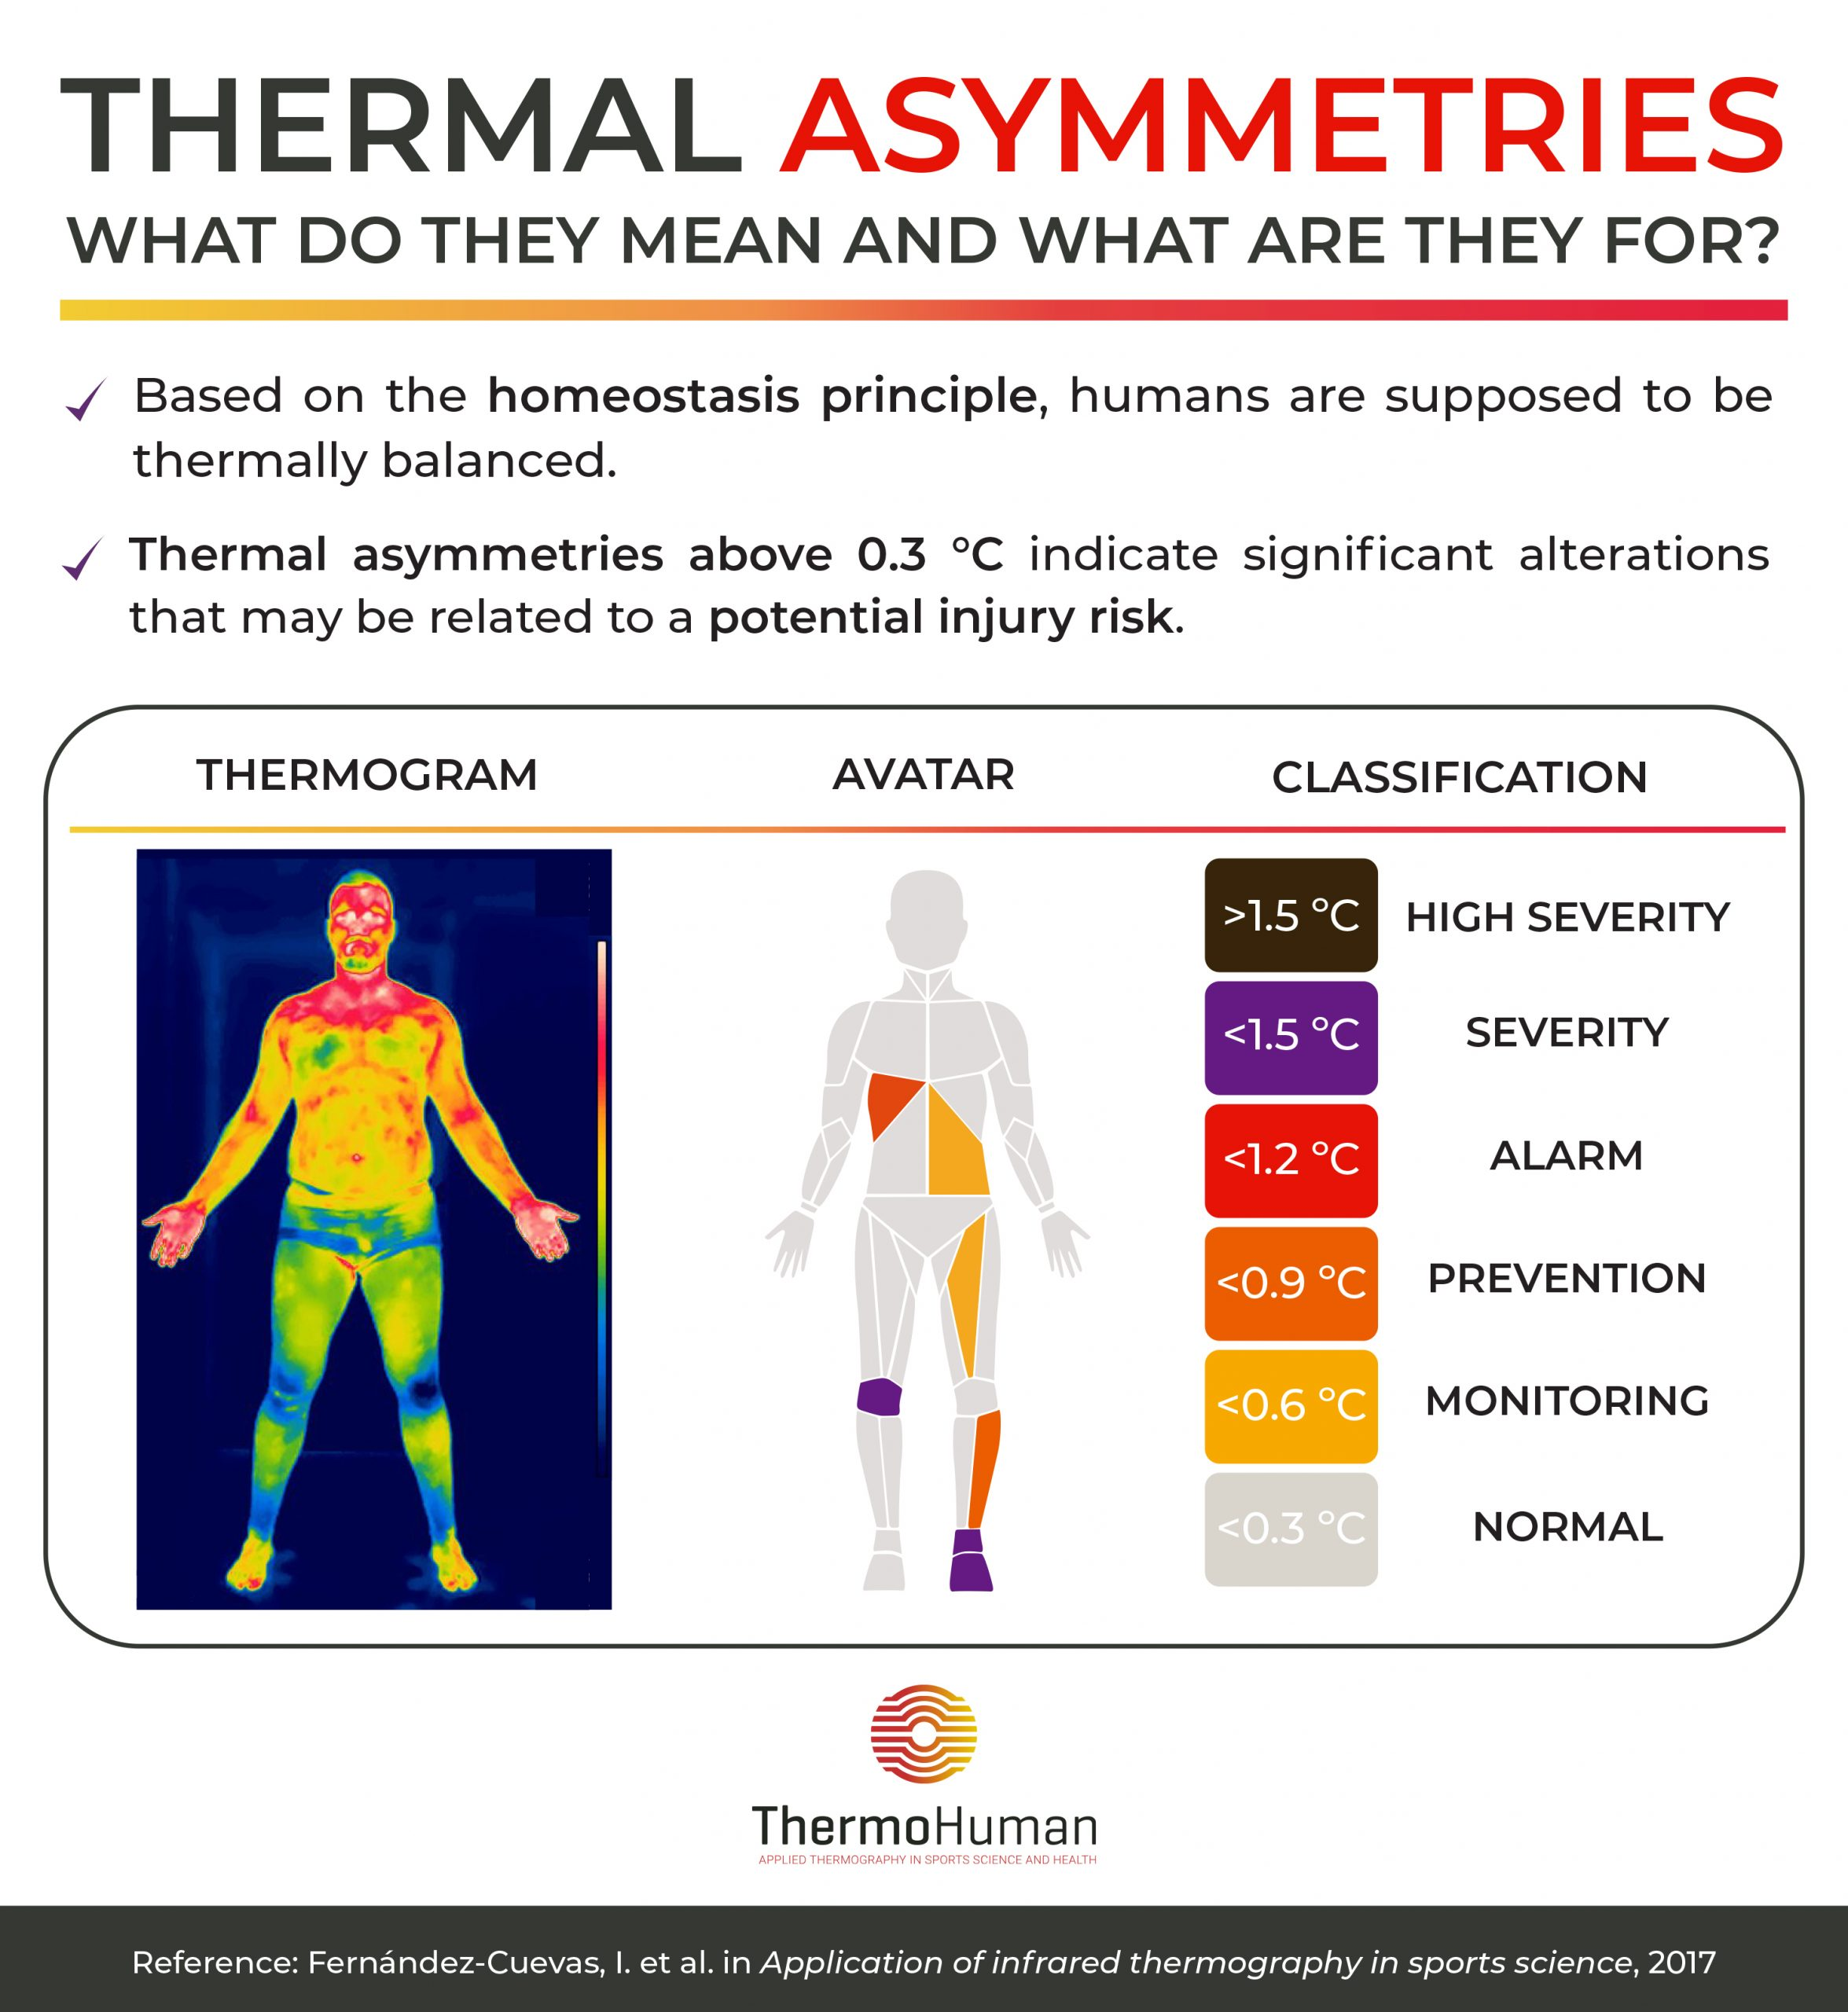 Thermal asymmetries. What do they mean and what are they for?